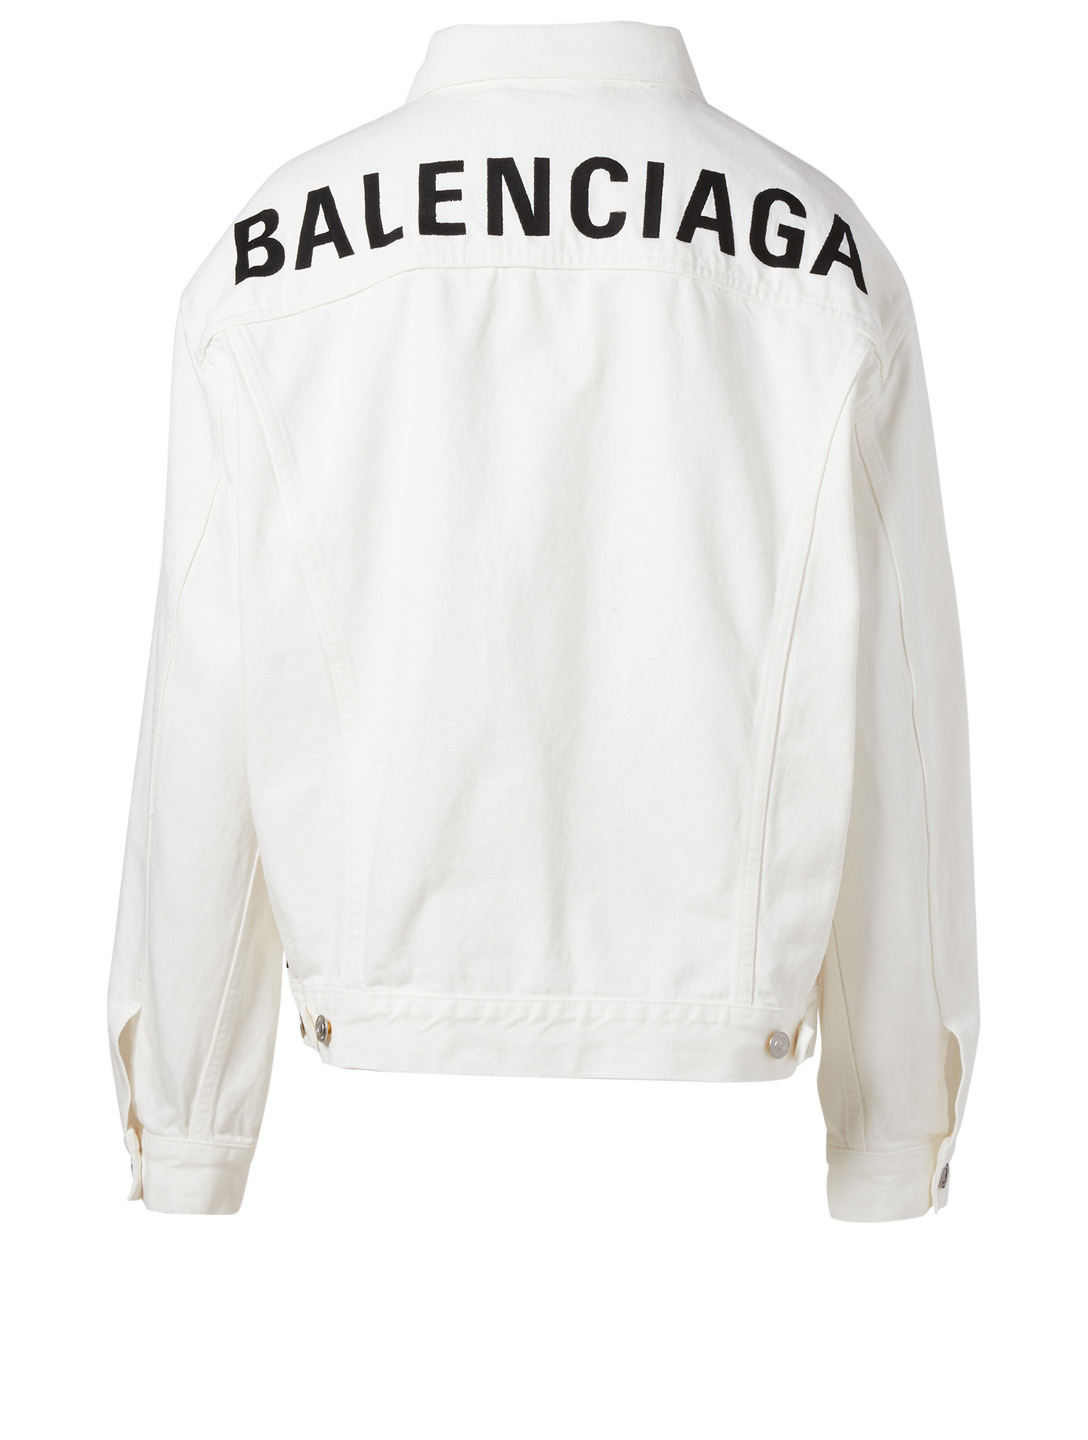 BALENCIAGA Logo Denim Jacket Women's White